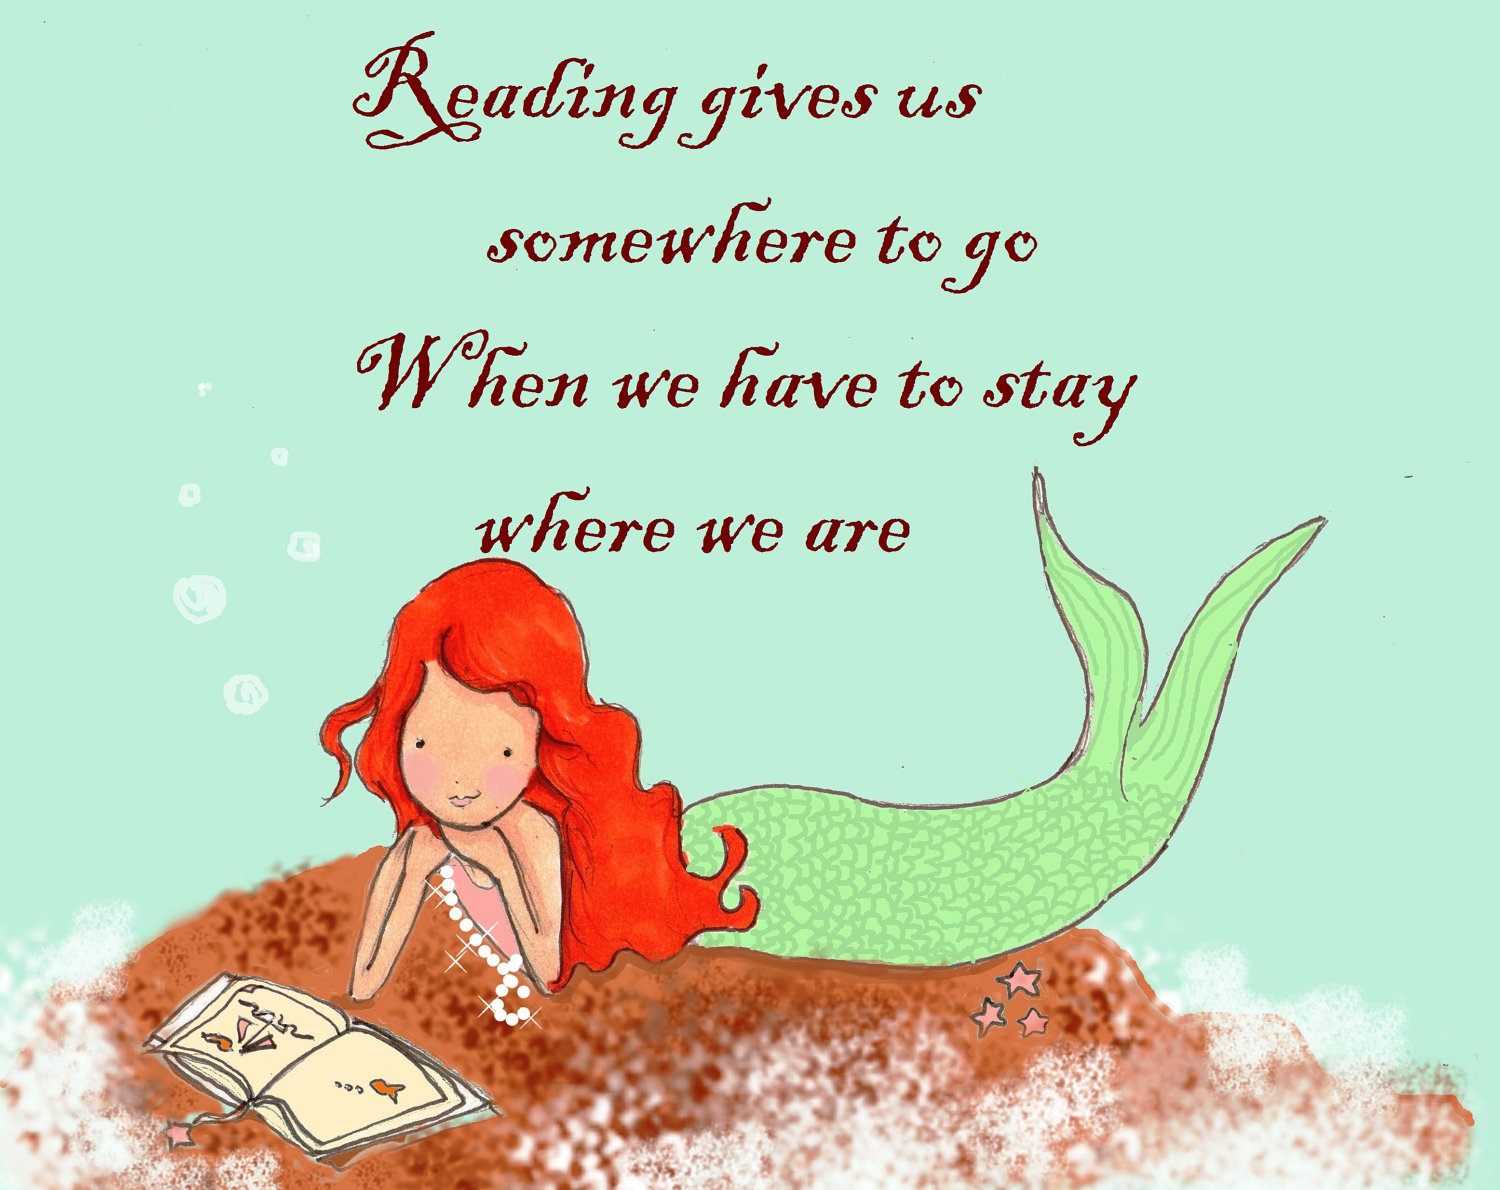 Quotes about Reading children's books (46 quotes)